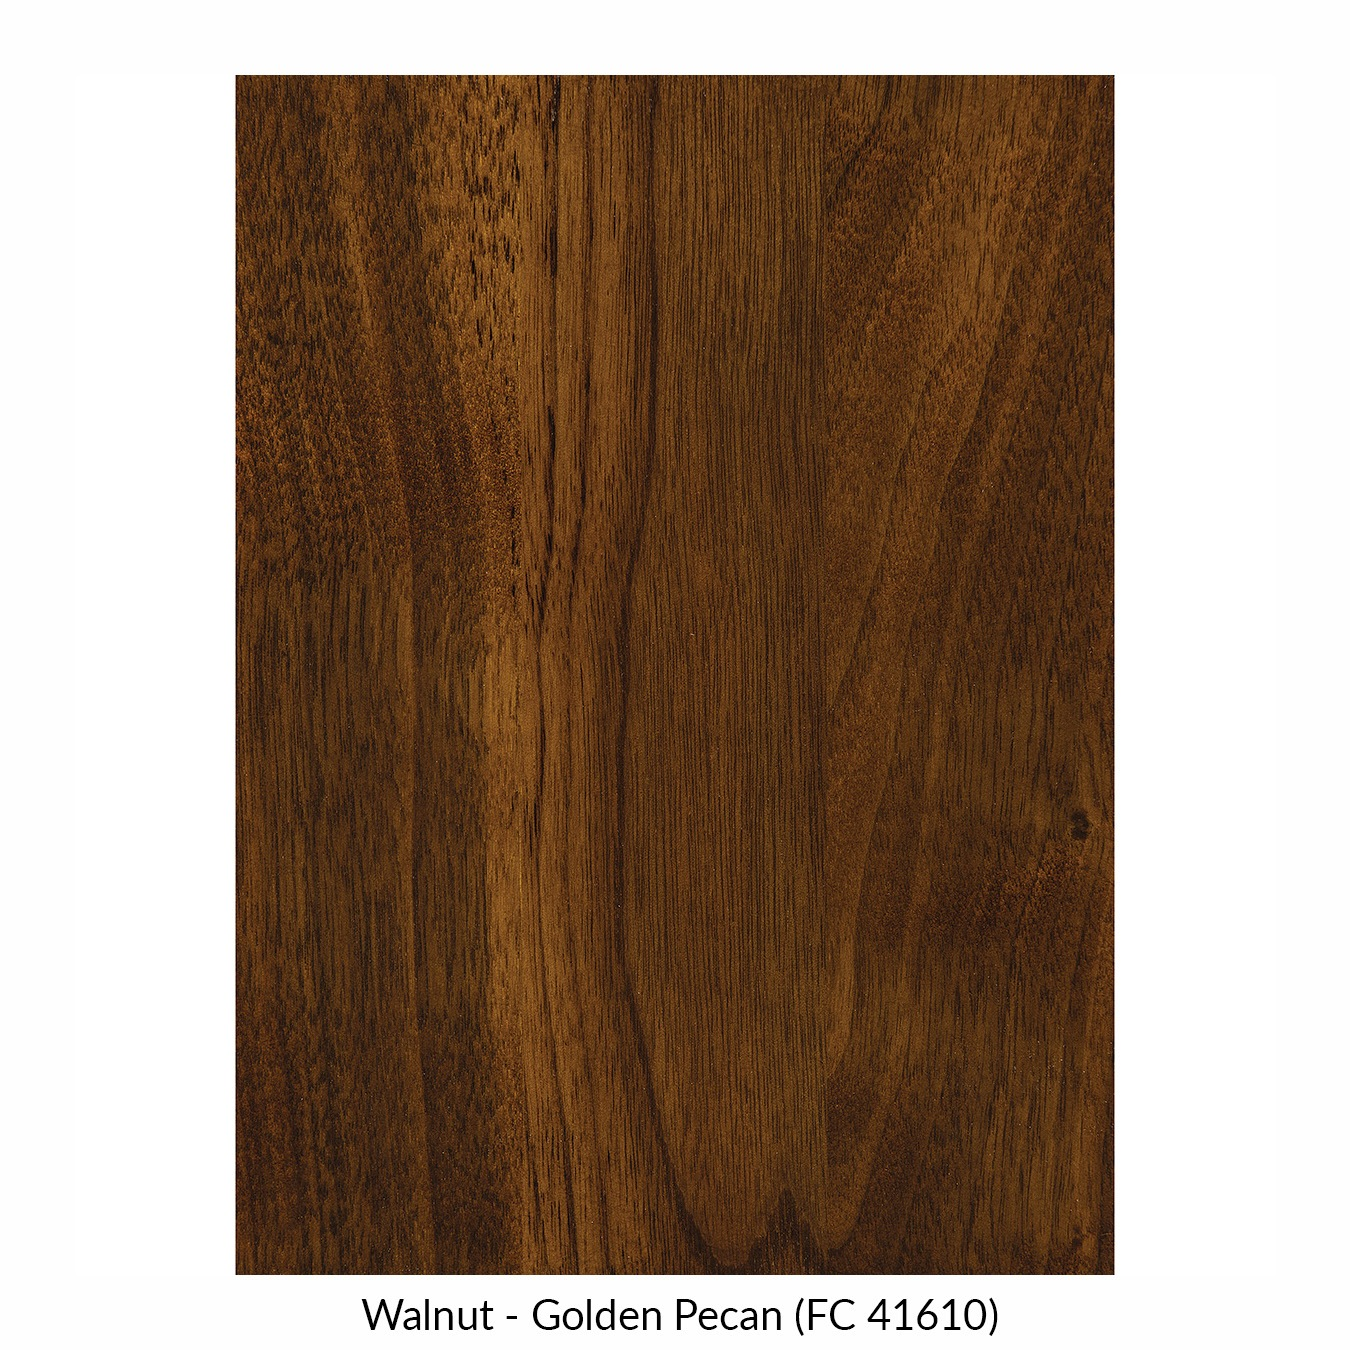 spectrum-walnut-golden-pecan-fc-41610.jpg